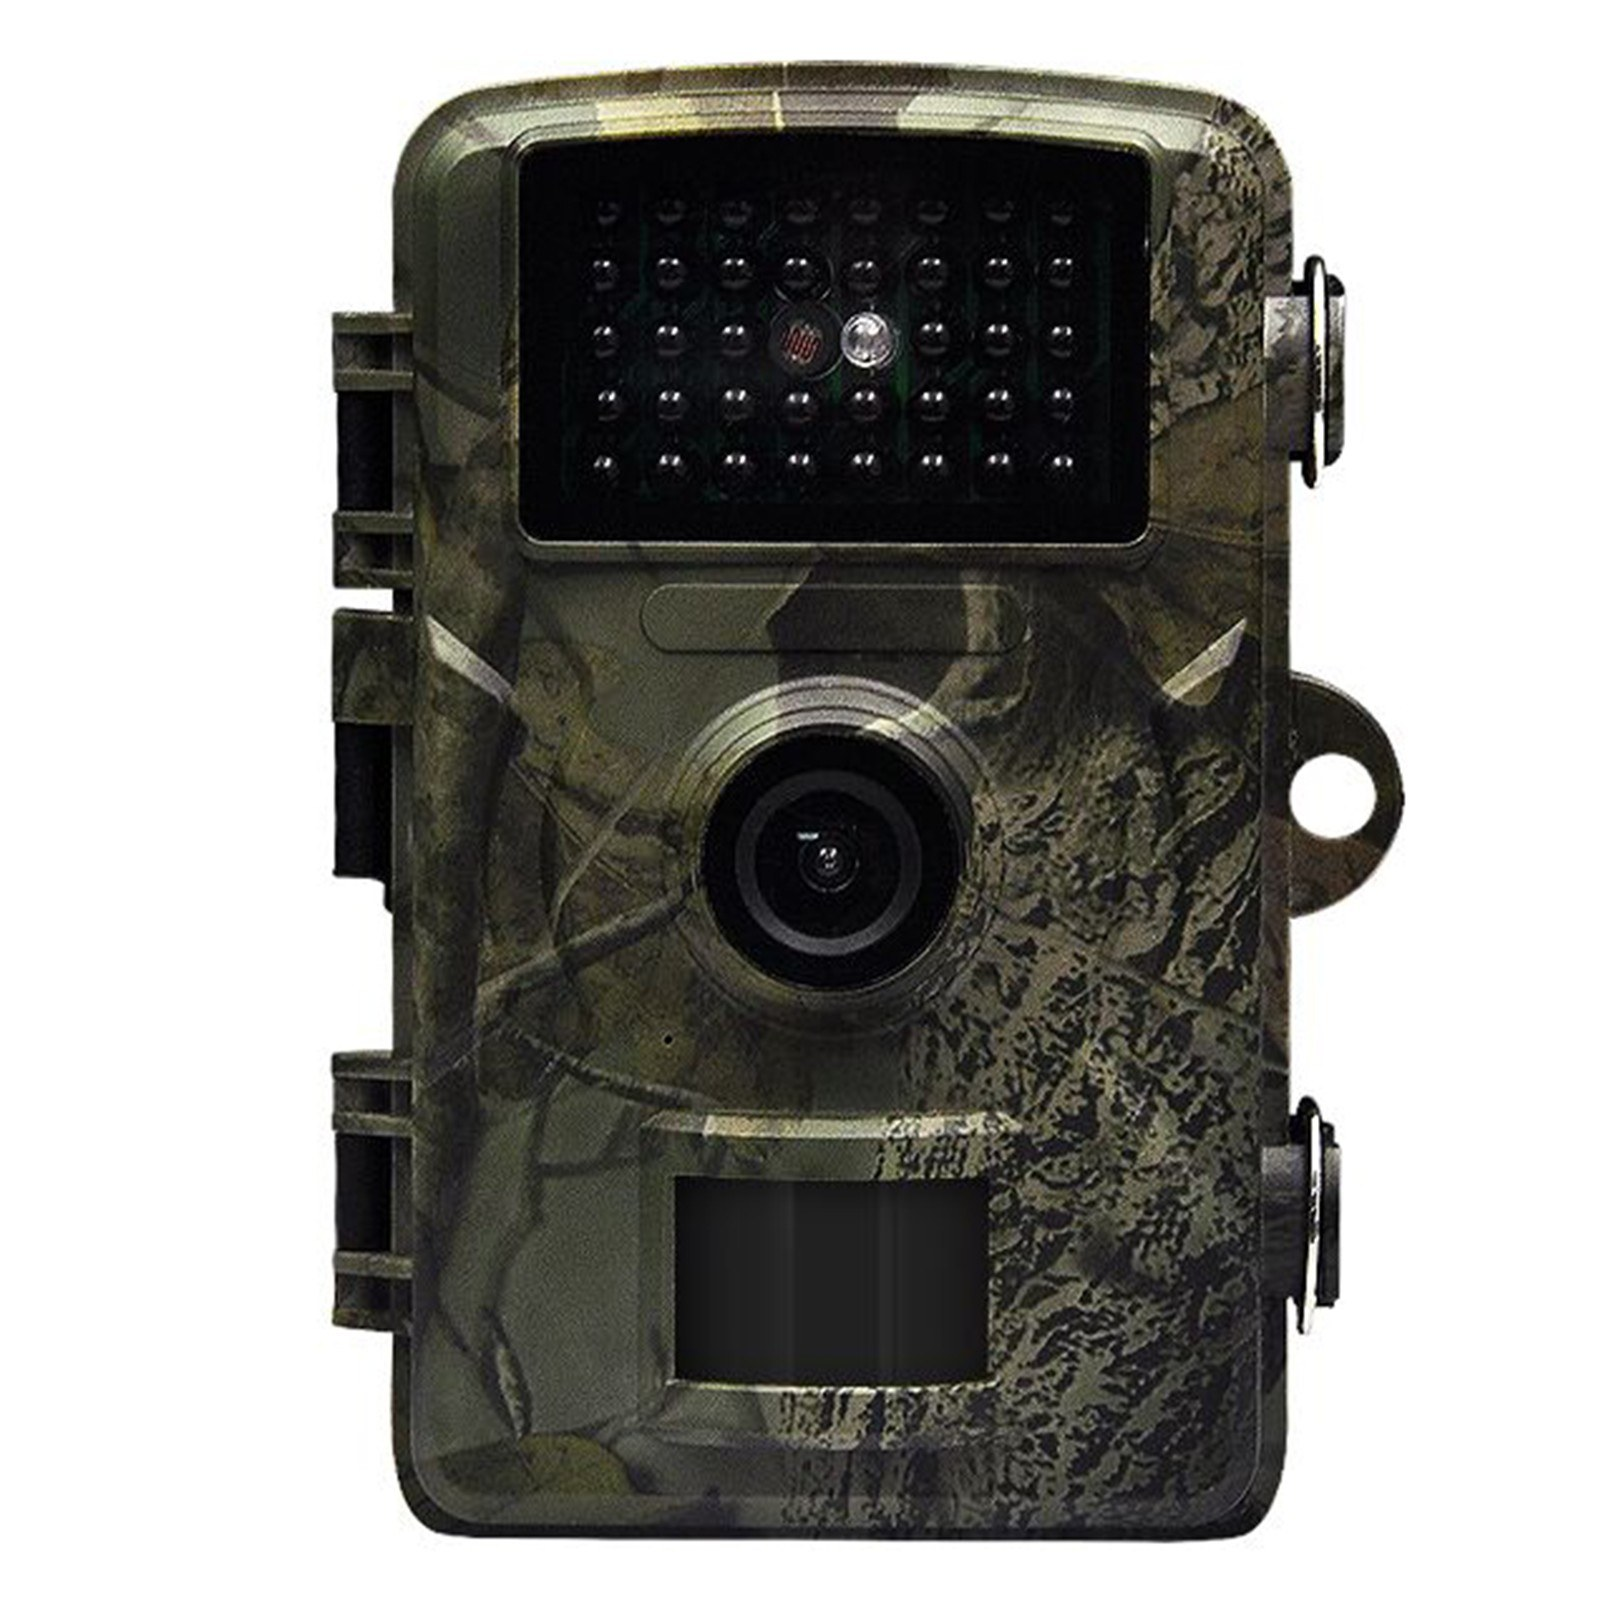 tomtop.com - 53% OFF Outdoor High Definition Wildlife Trail Camera, Free Shipping $35.99